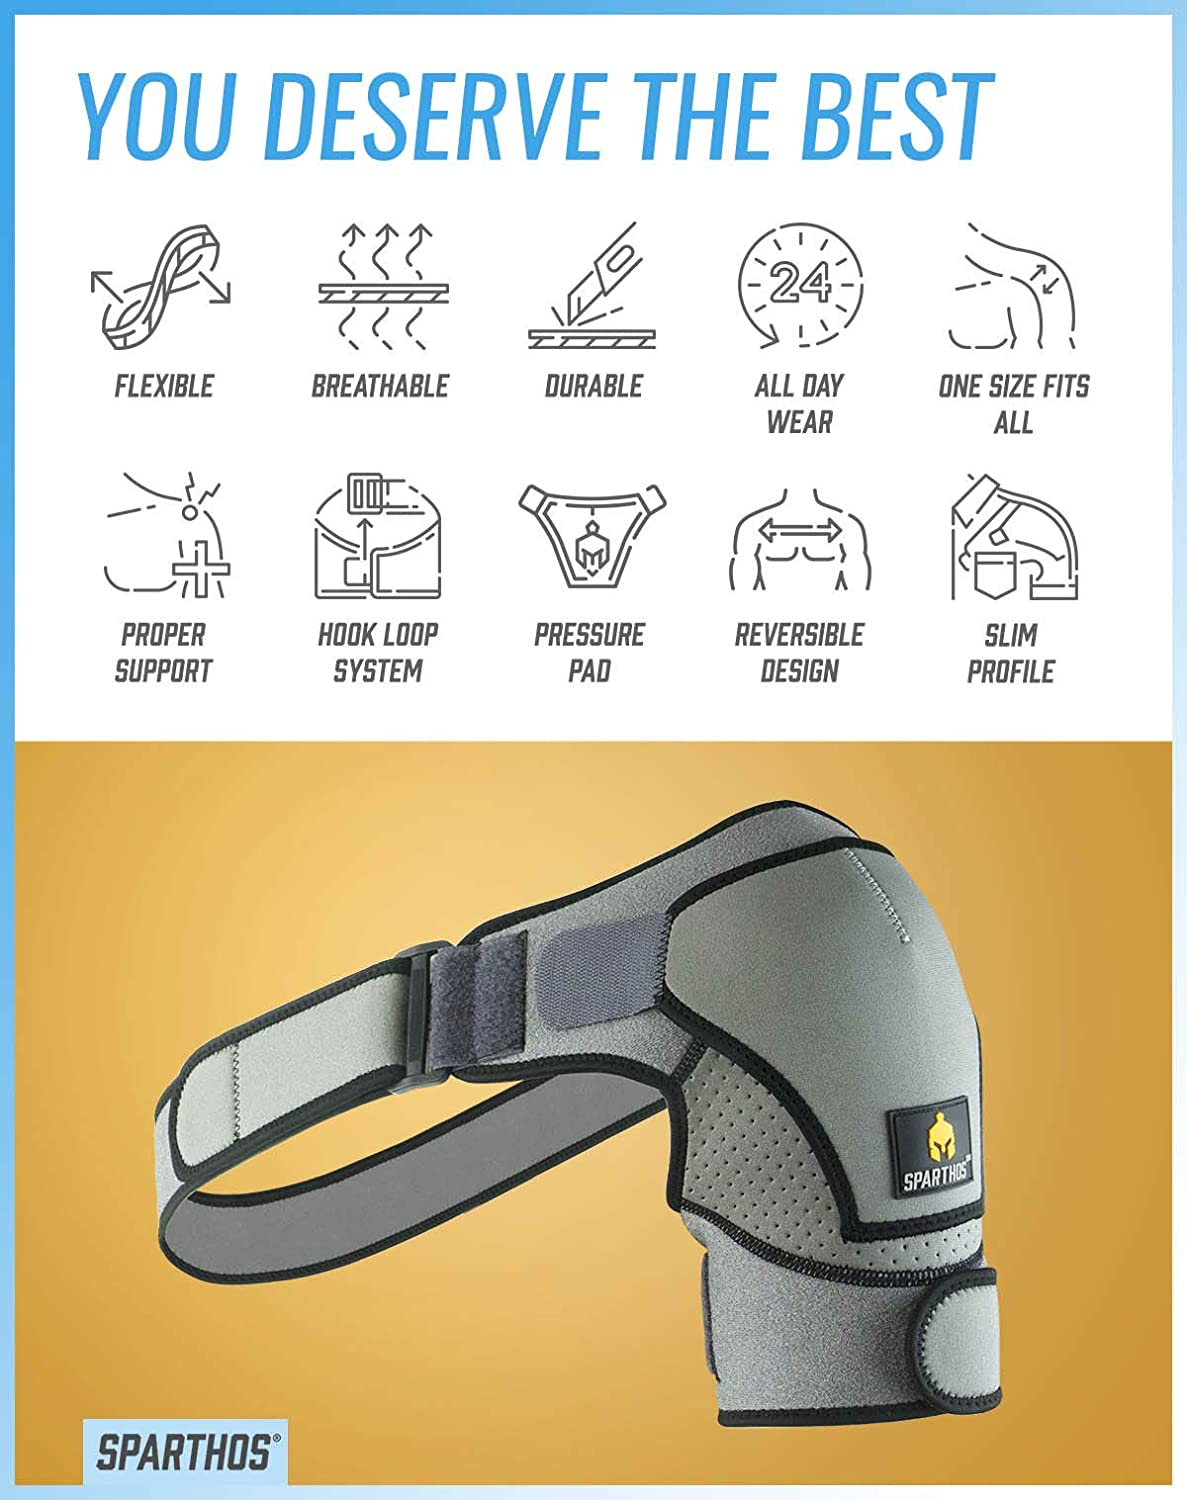 Support and Compression Sleeve for Torn Rotator Cuff Stability Strap Ice Pack Pocket Sparthos Shoulder Brace Arm Immobilizer Wrap for Men and Women Dislocated Sholder AC Joint Pain Relief